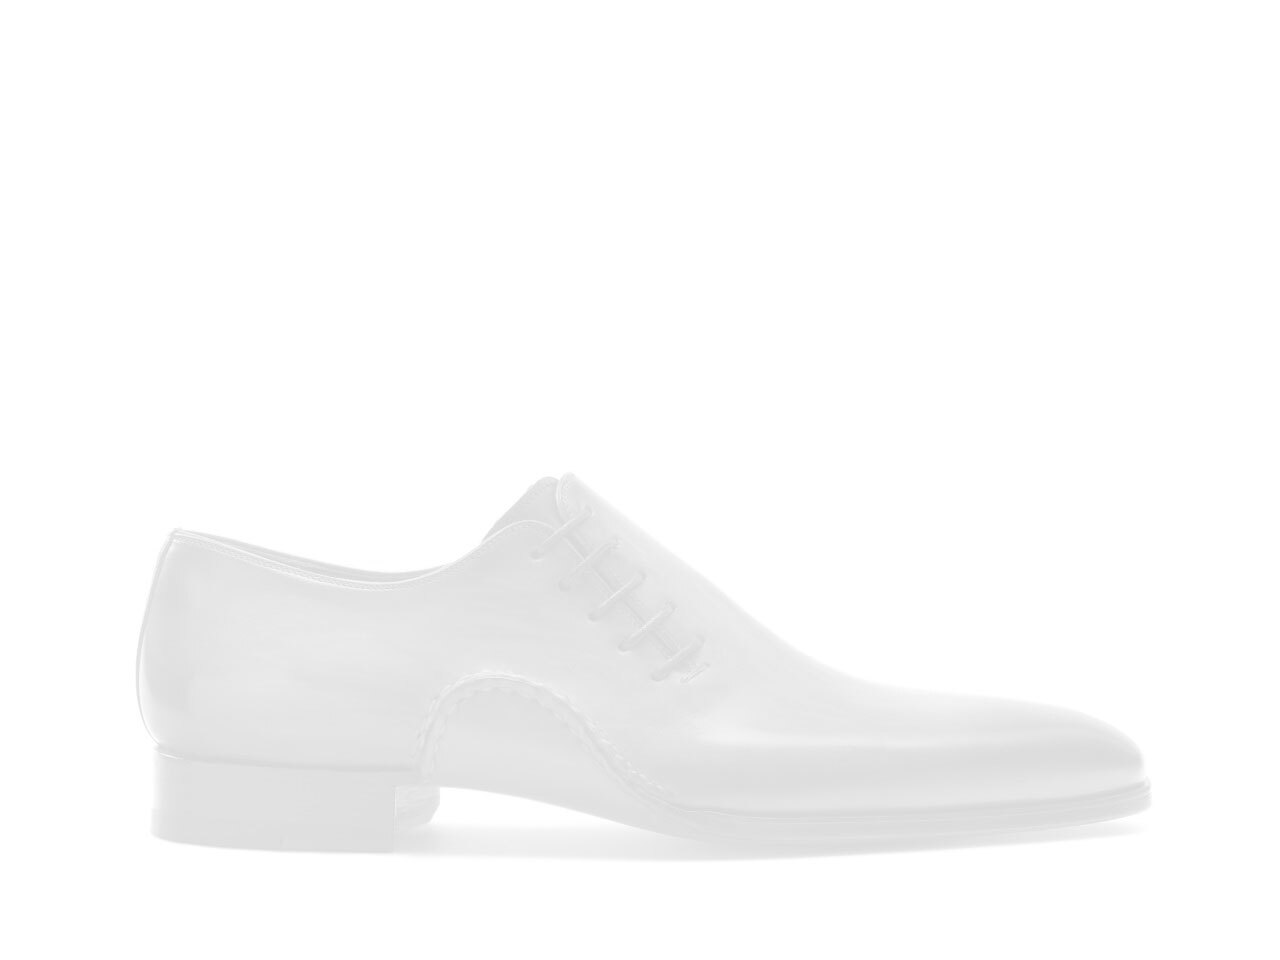 Side view of the Magnanni Elonso Lo White and Red Men's Sneakers